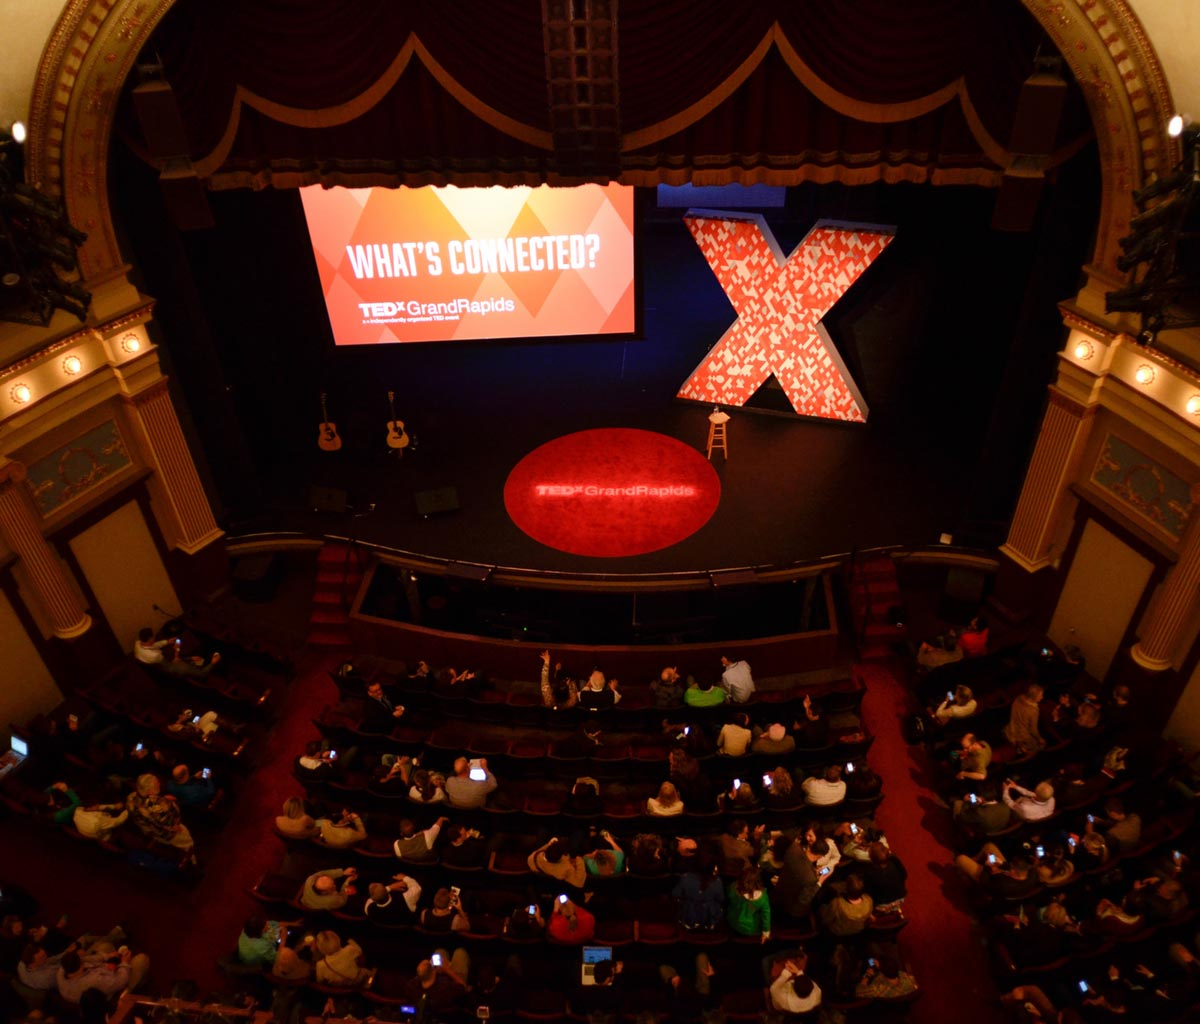 From the Peanut Gallery.  TEDxGrandRapids 2014.